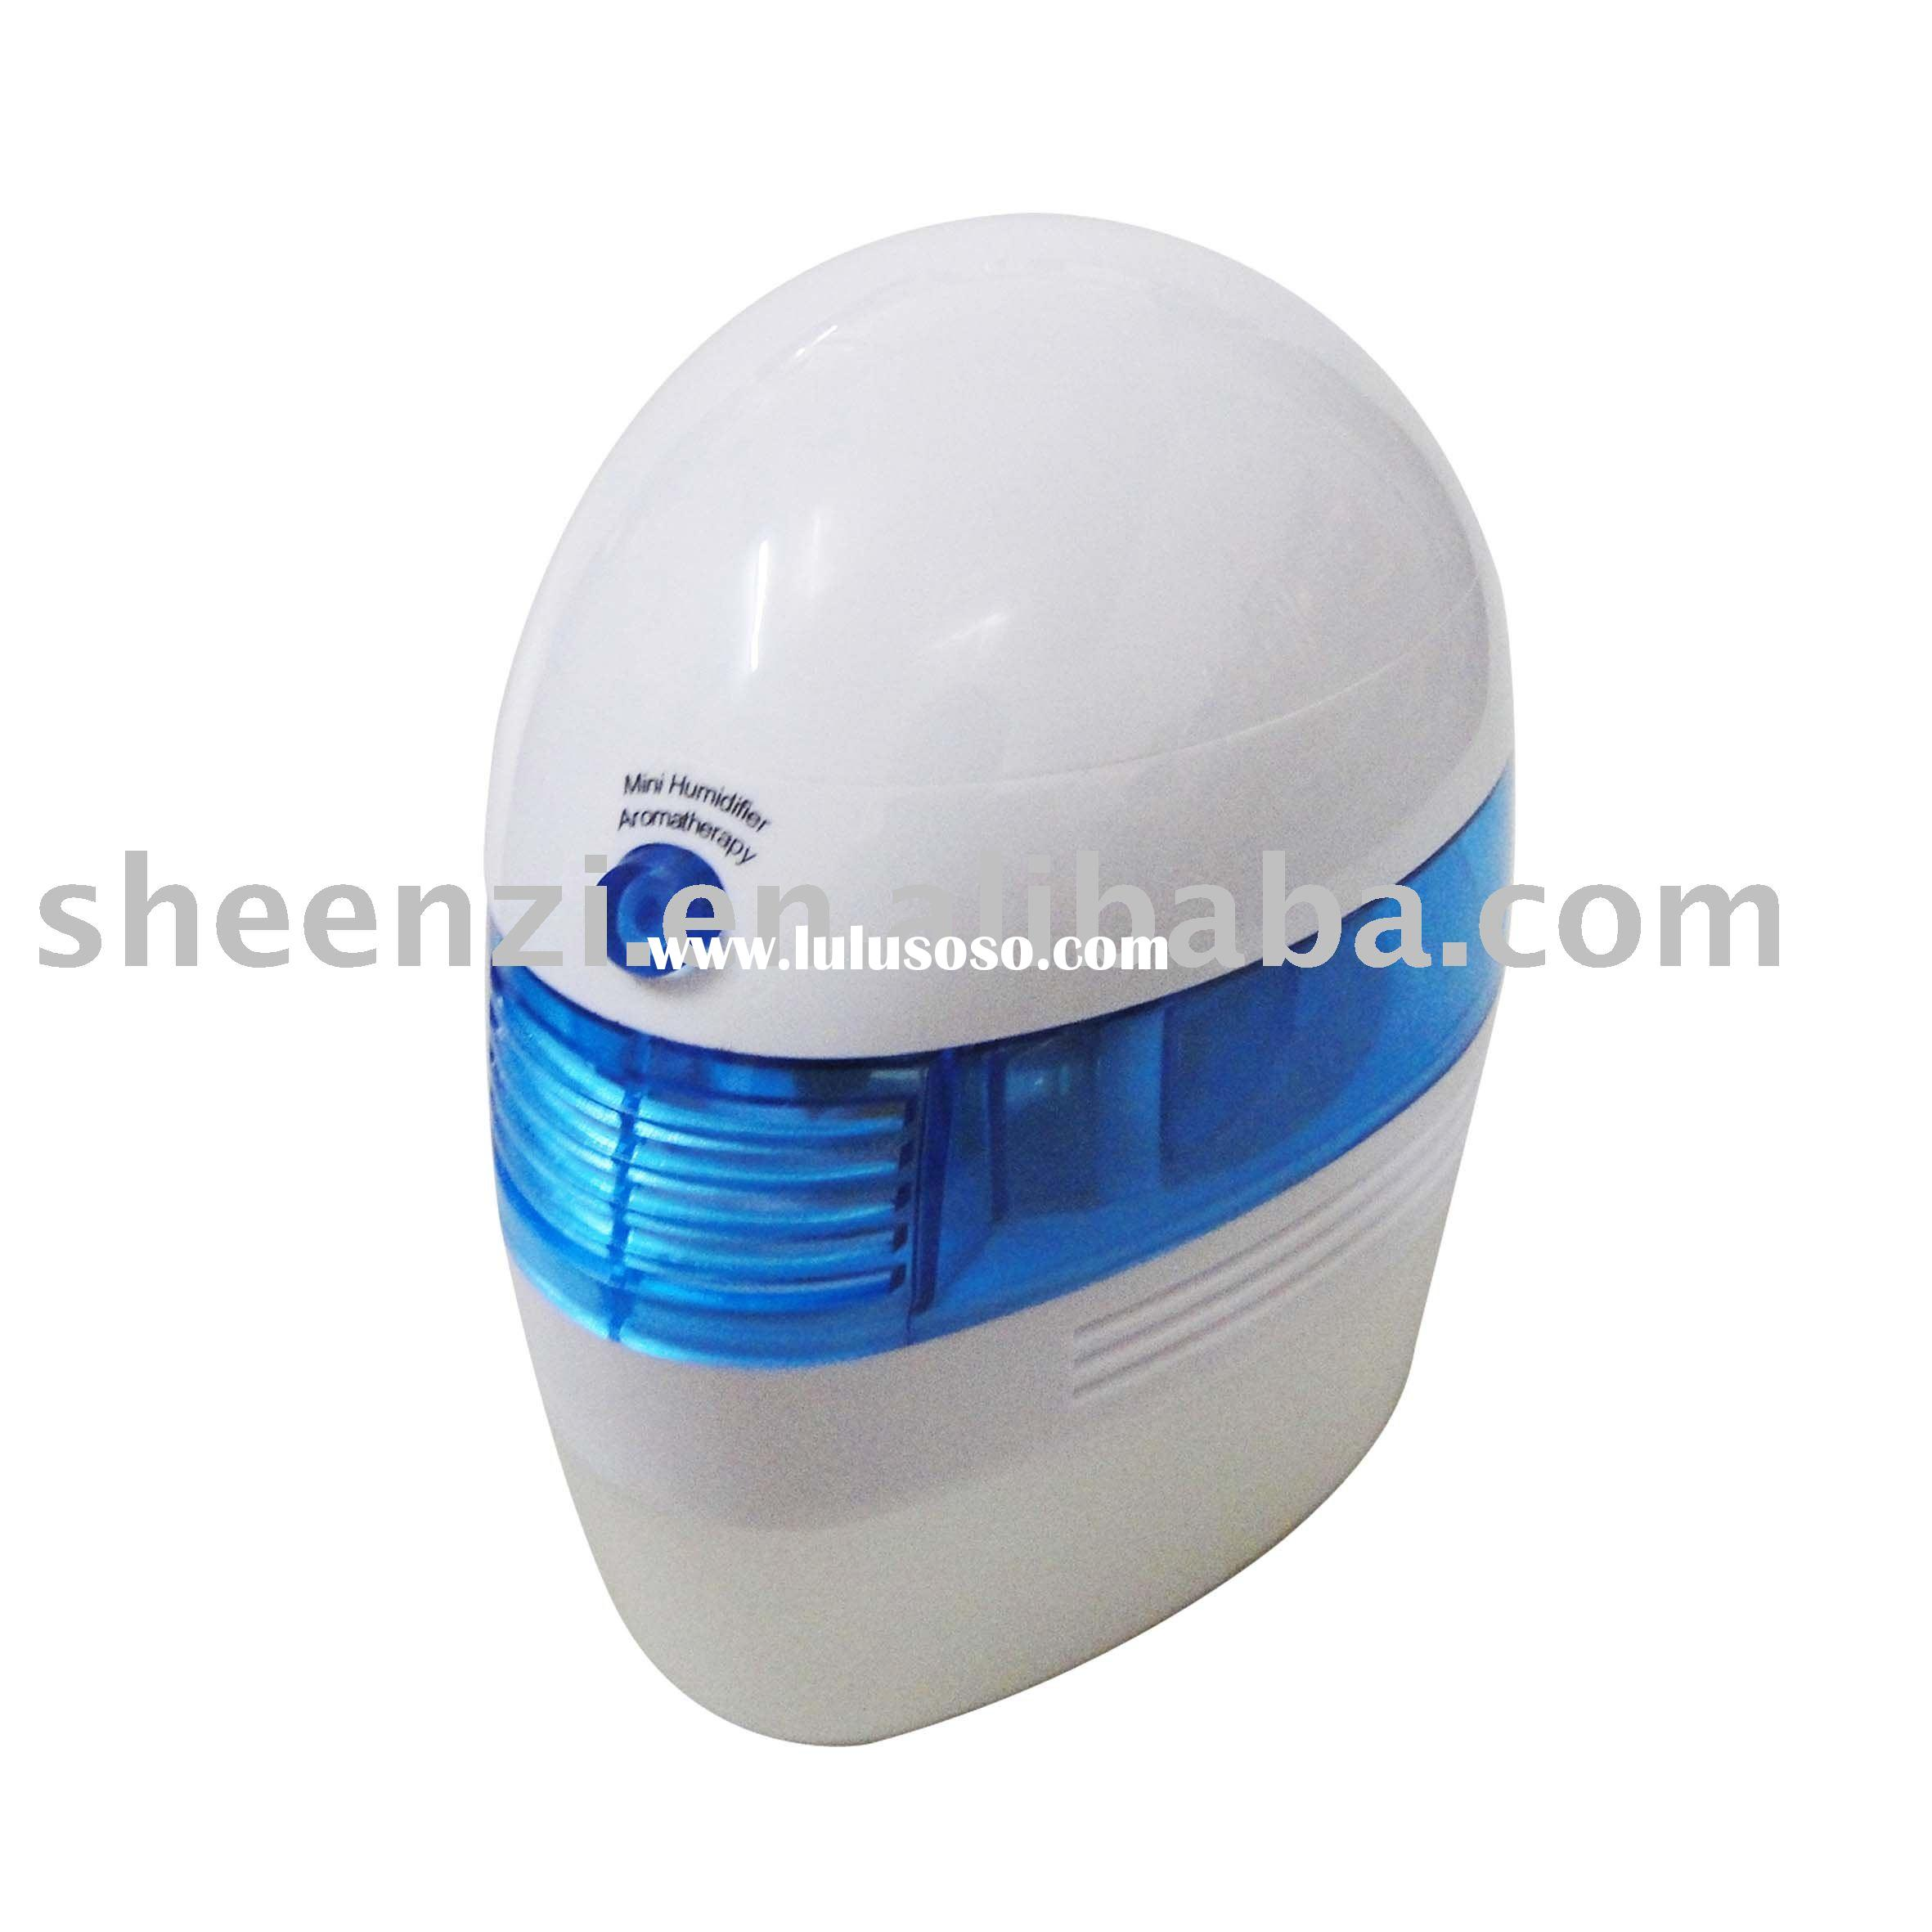 mini air humidifier mini air humidifier Manufacturers in LuLuSoSo.com  #0D8DBE